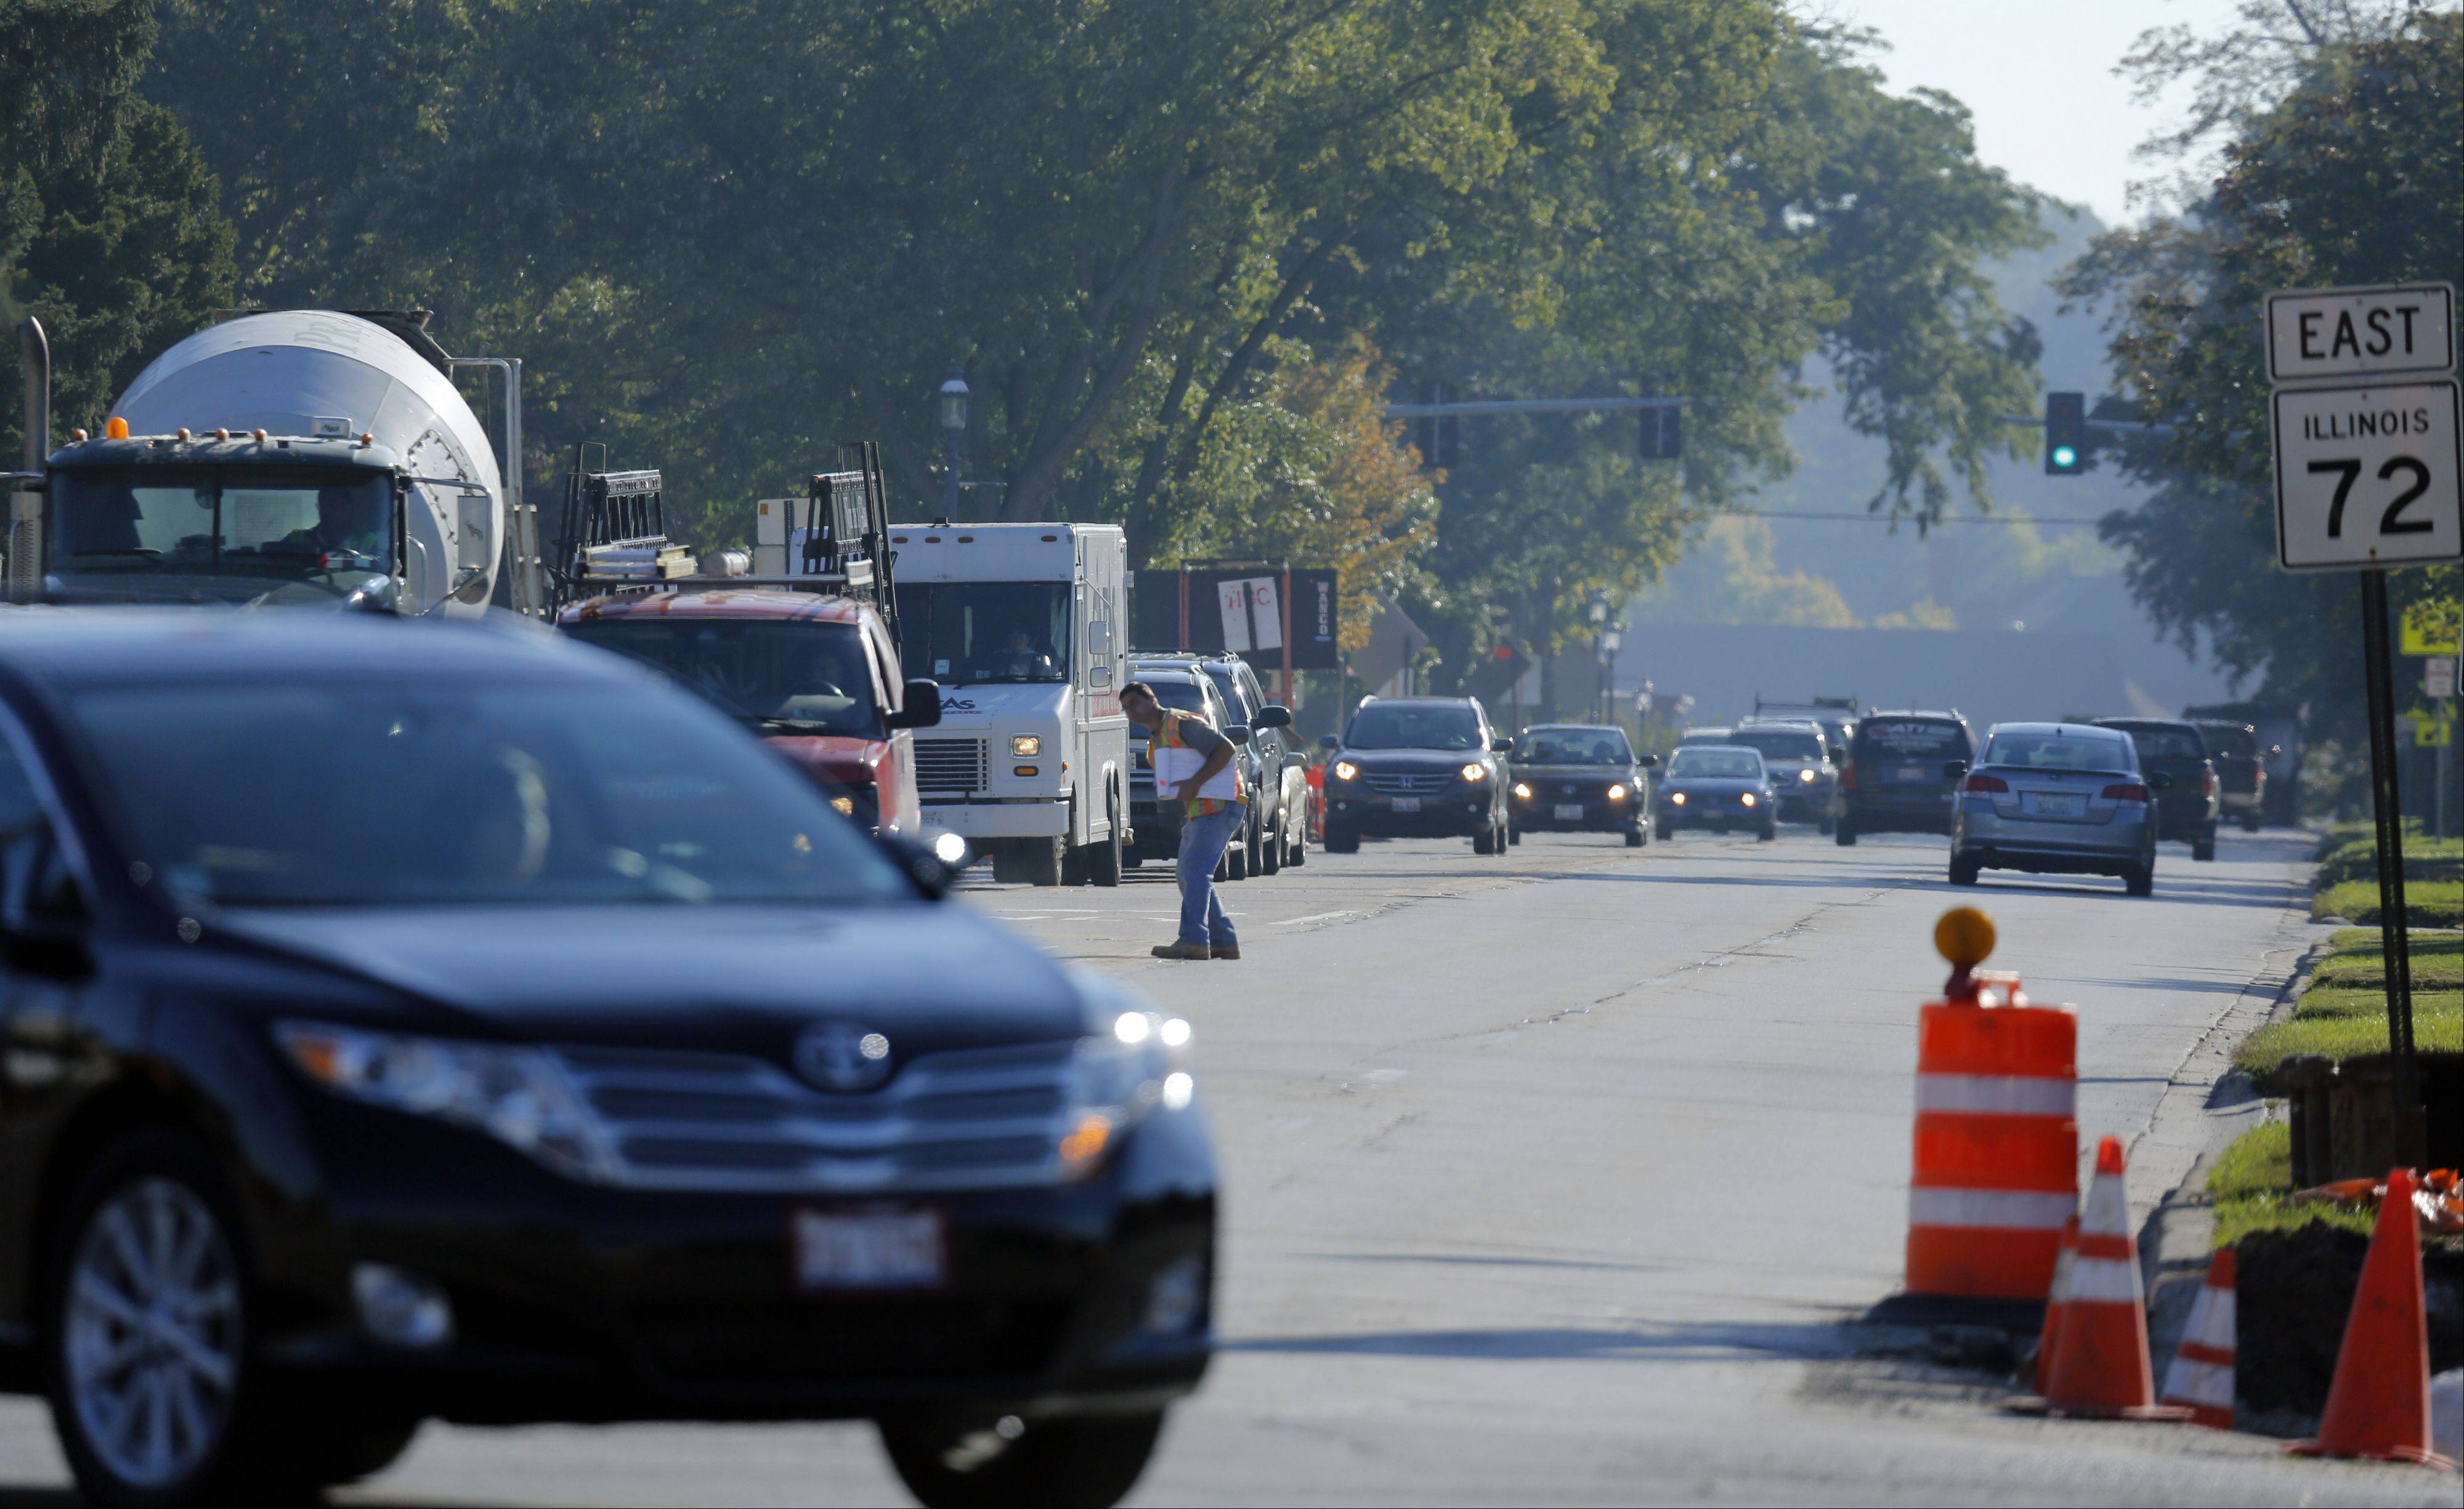 West Dundee police report increased road rage and impatience due to ongoing construction at routes 72 and 31. West Dundee Village Manager Joseph Cavallaro says the project won't be complete until next year.